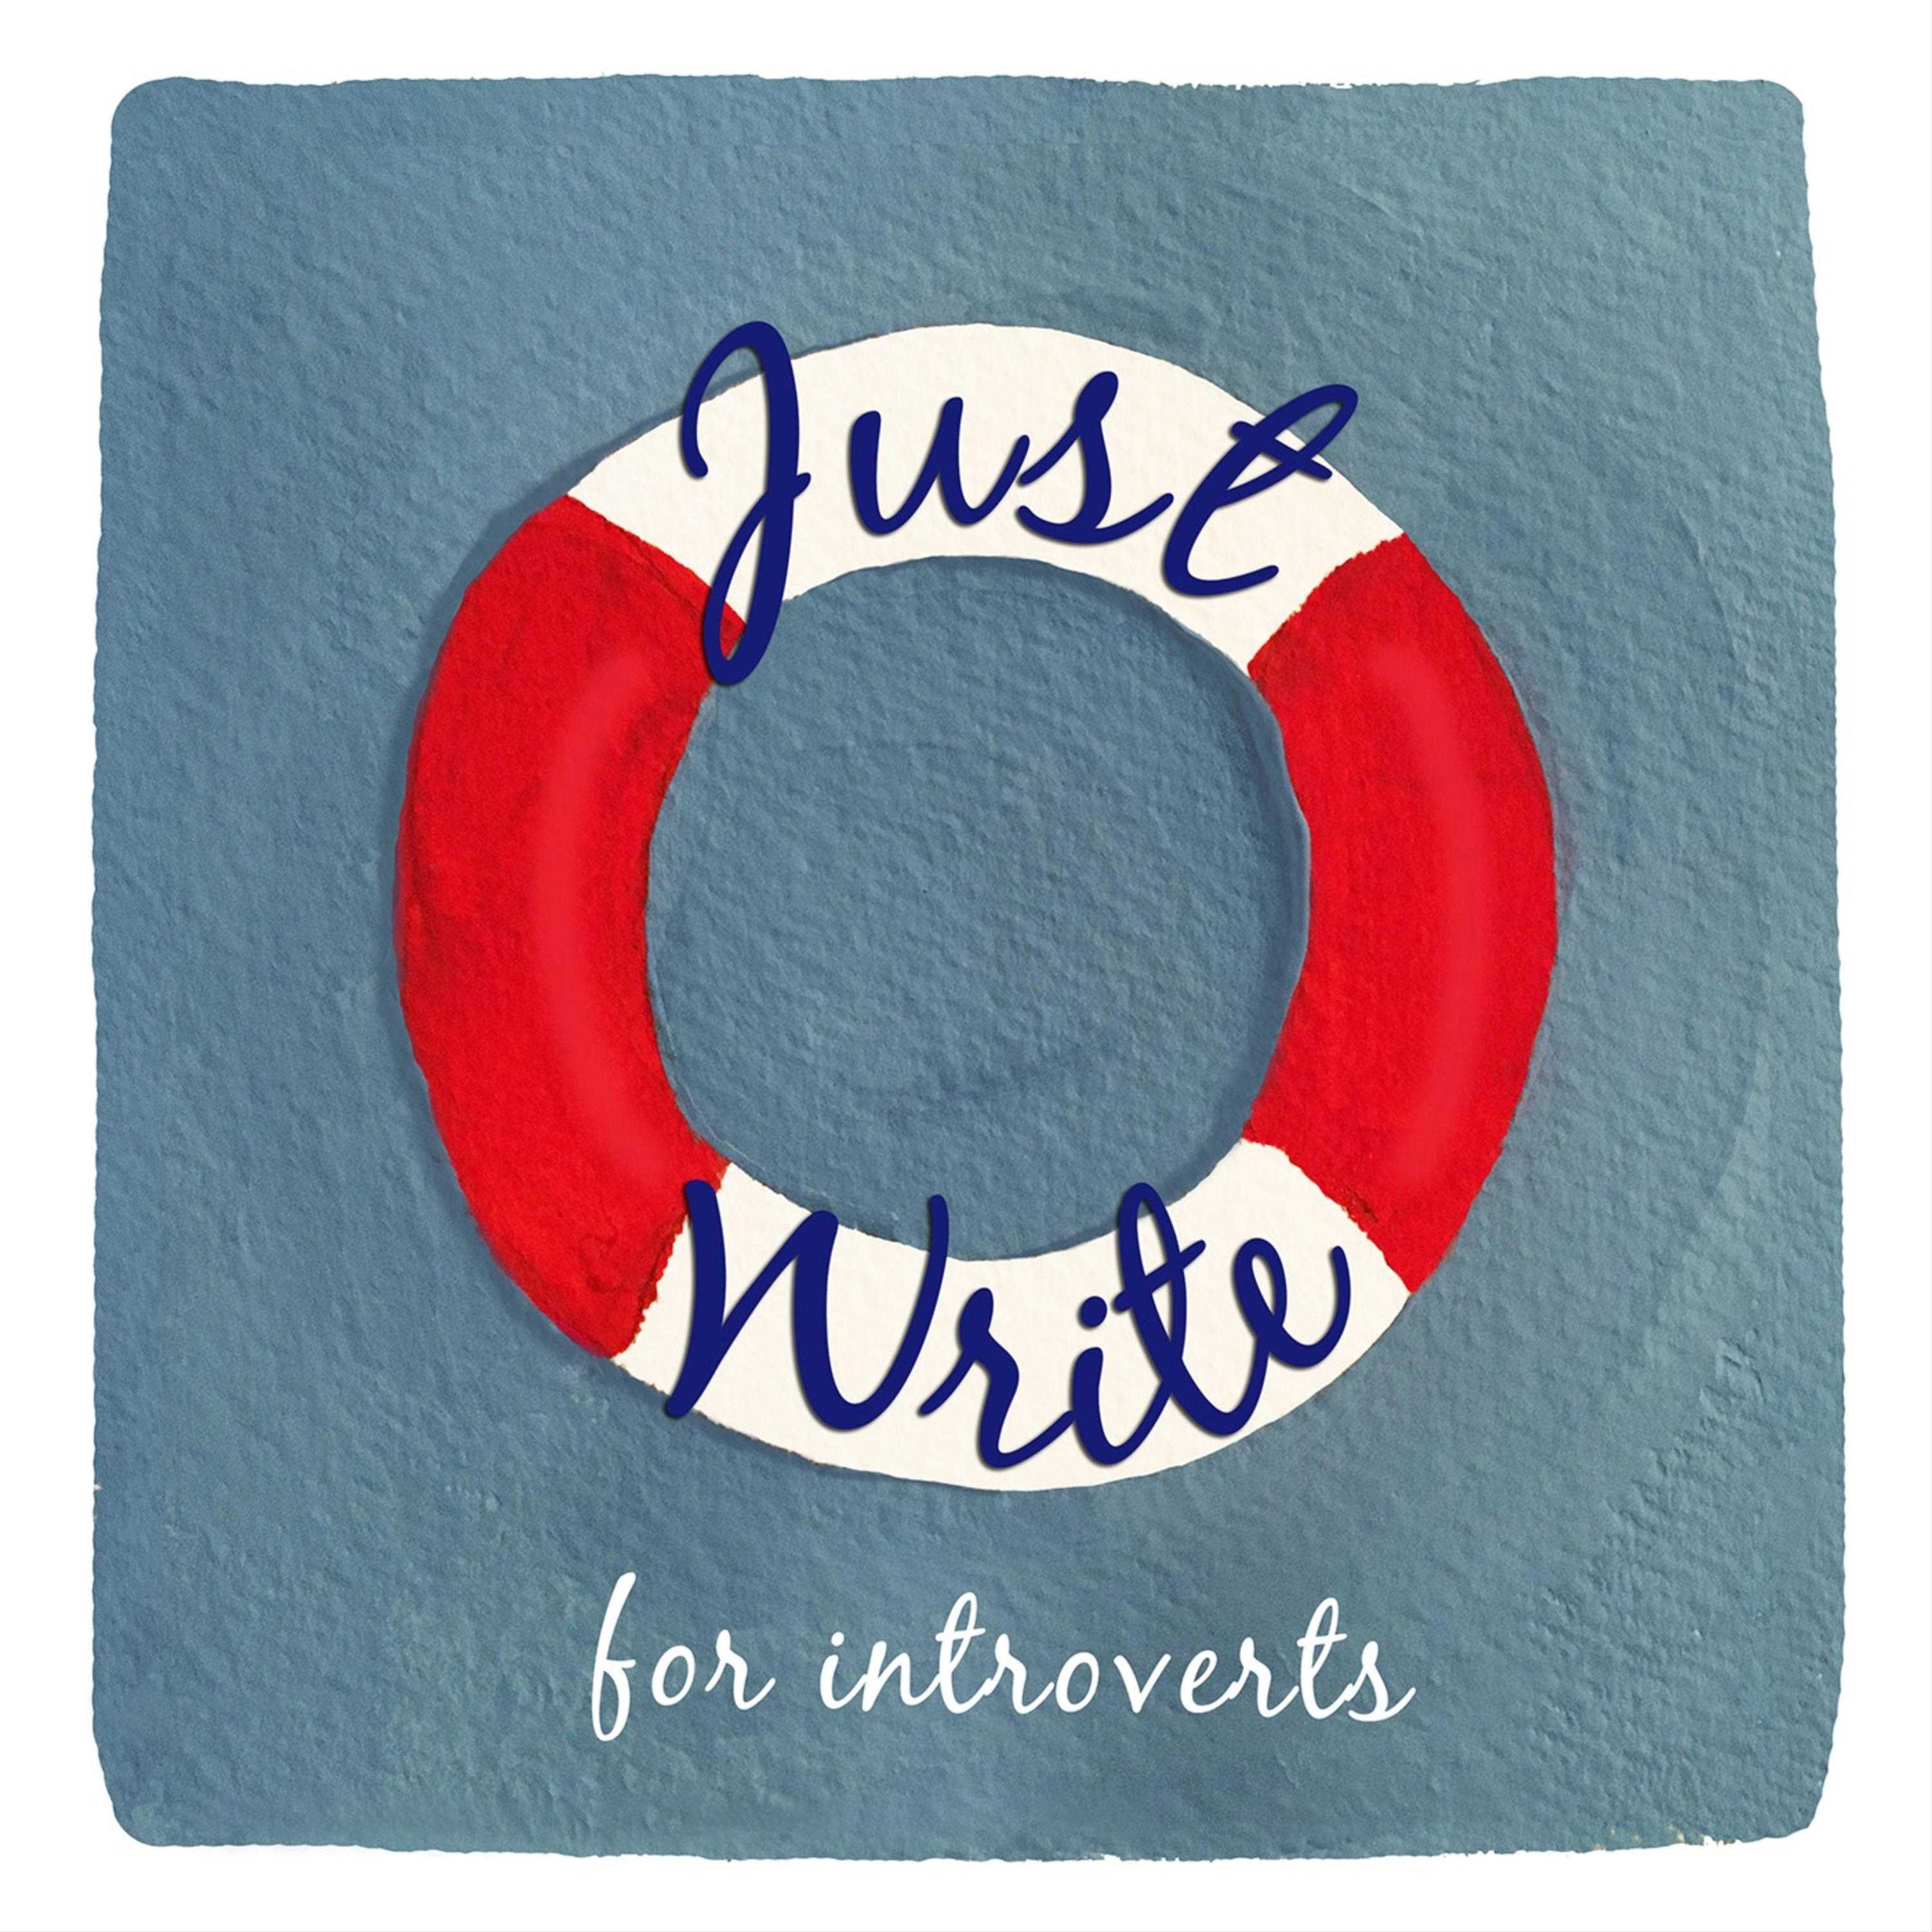 Just Write for introverts